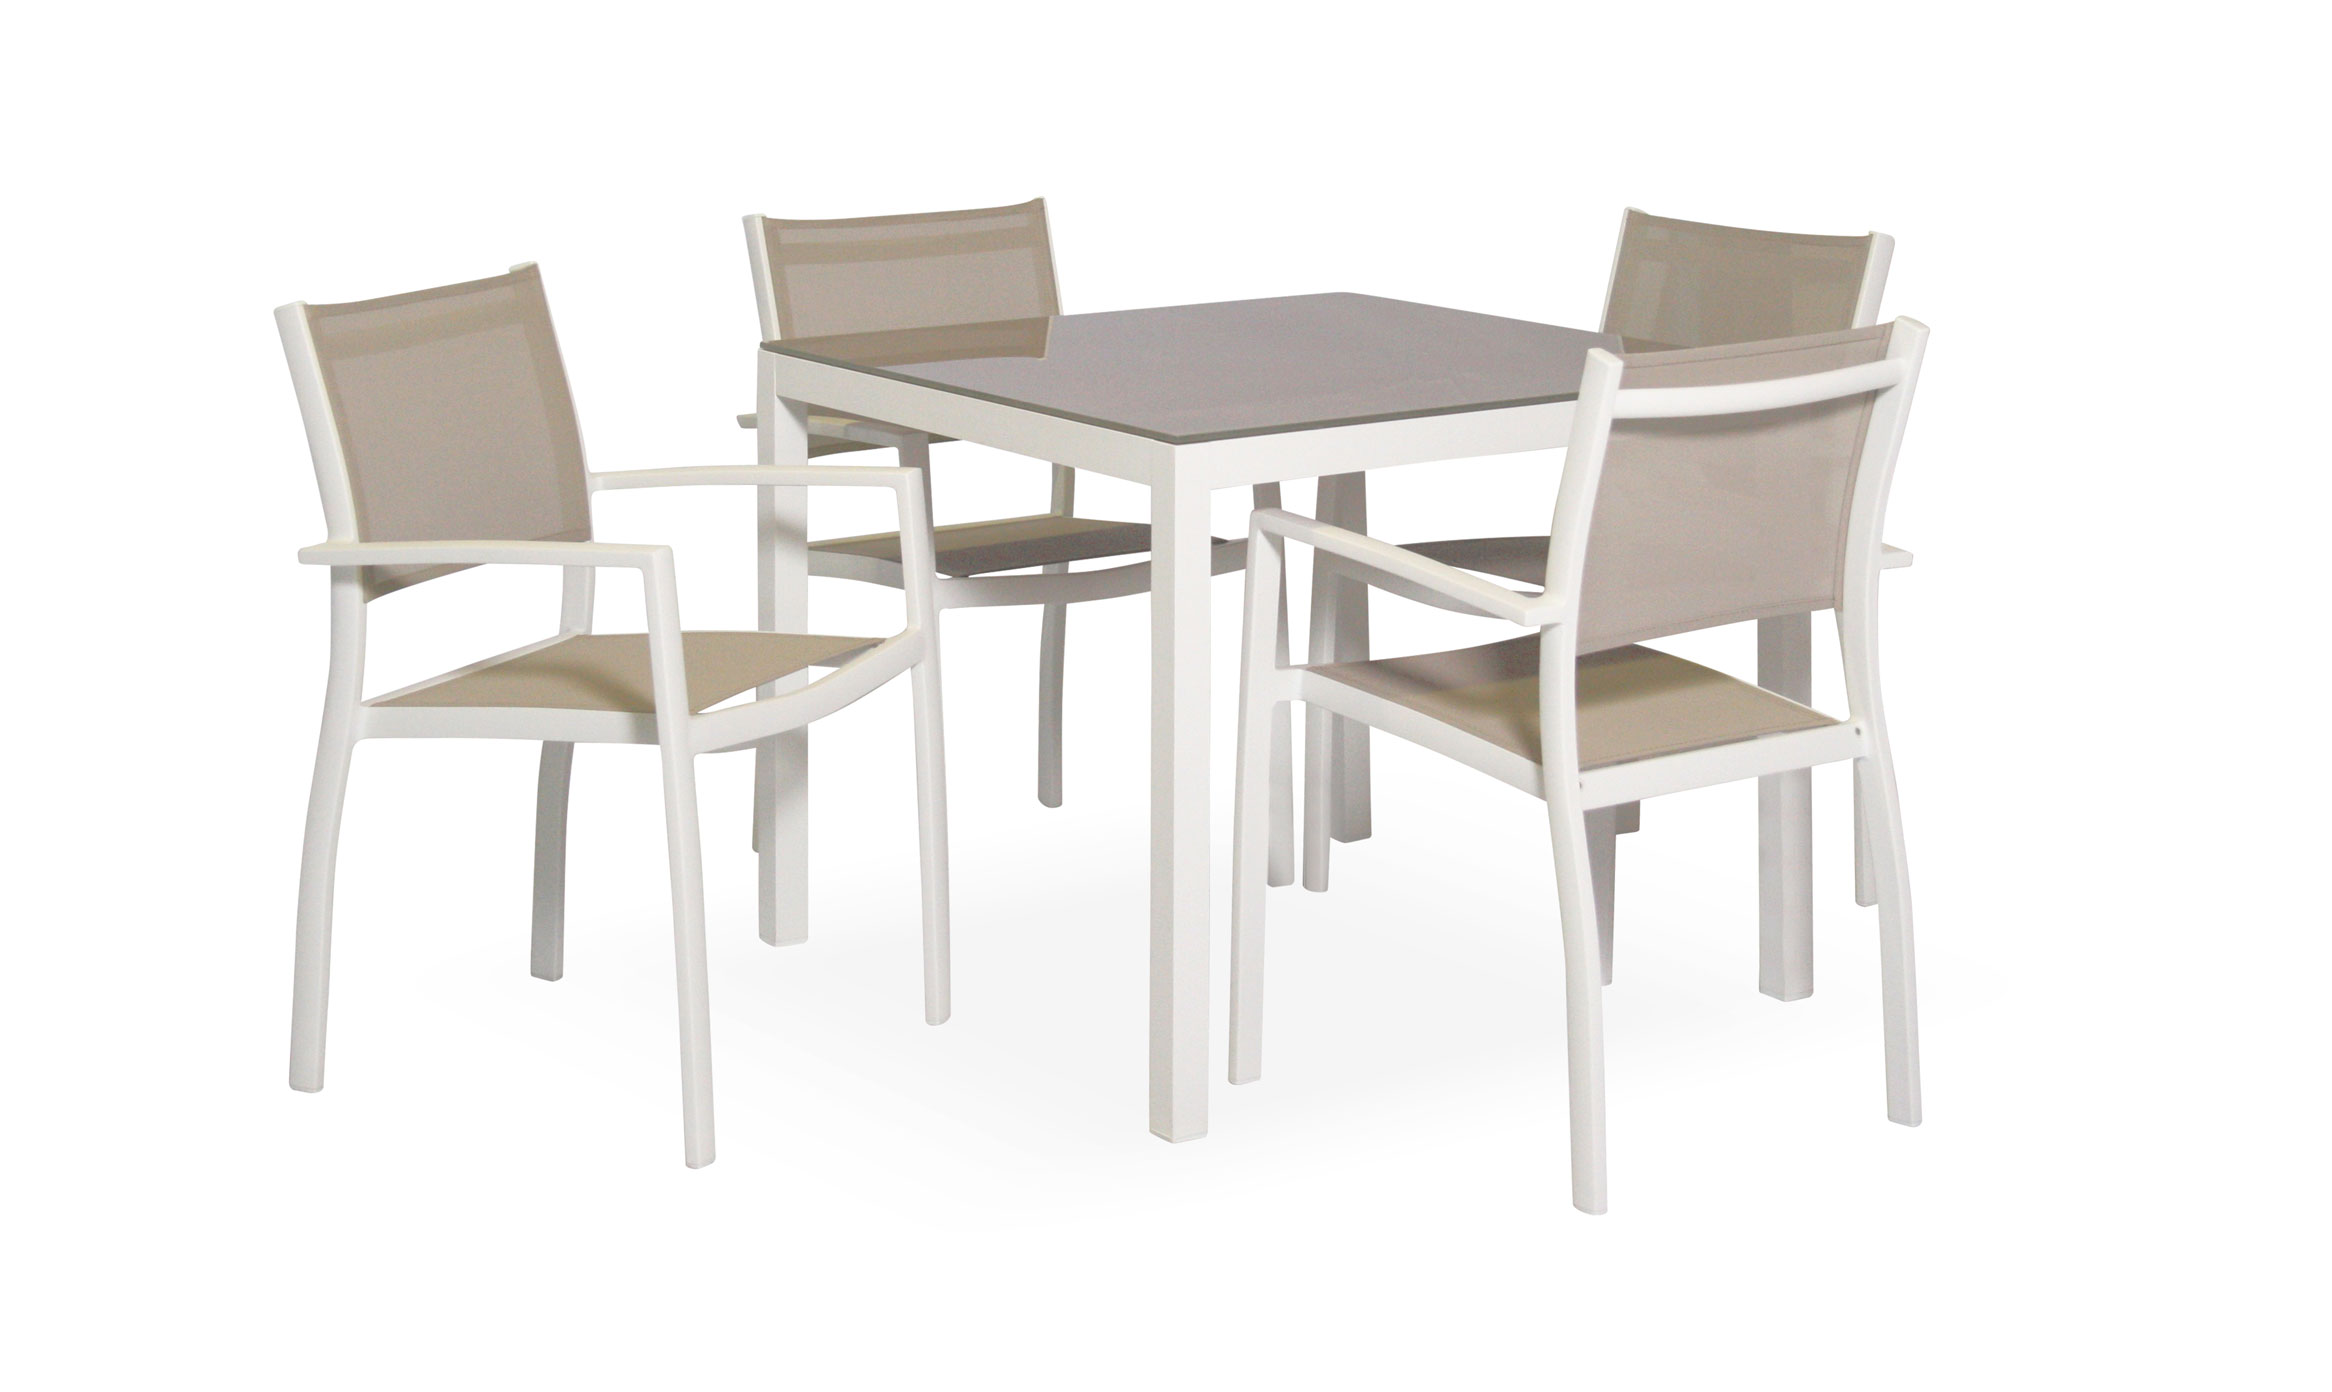 Call 4 seater Dining set